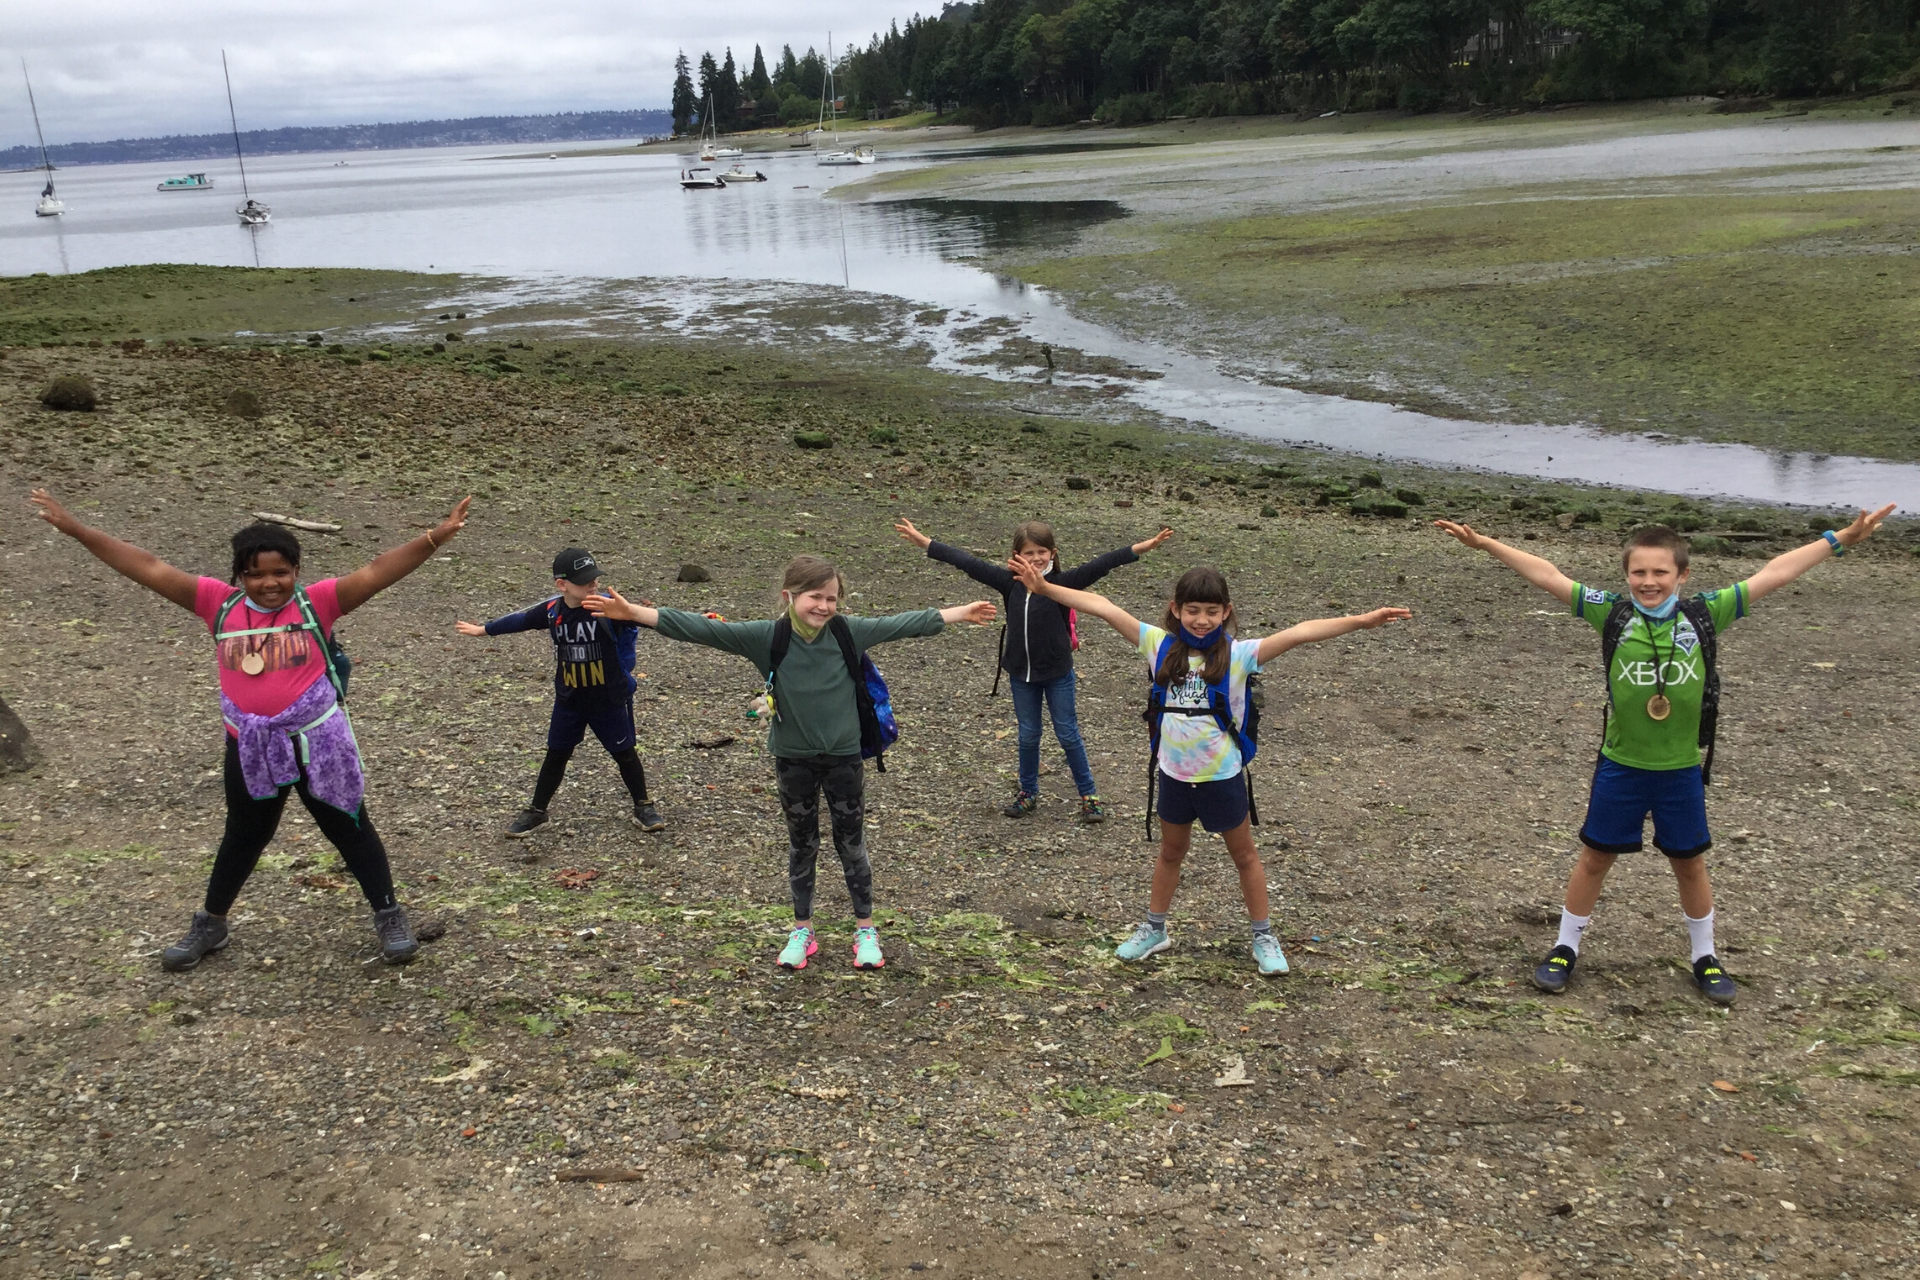 Campers stand with their arms outstretched to demonstrate social distancing at Blakely Harbor.